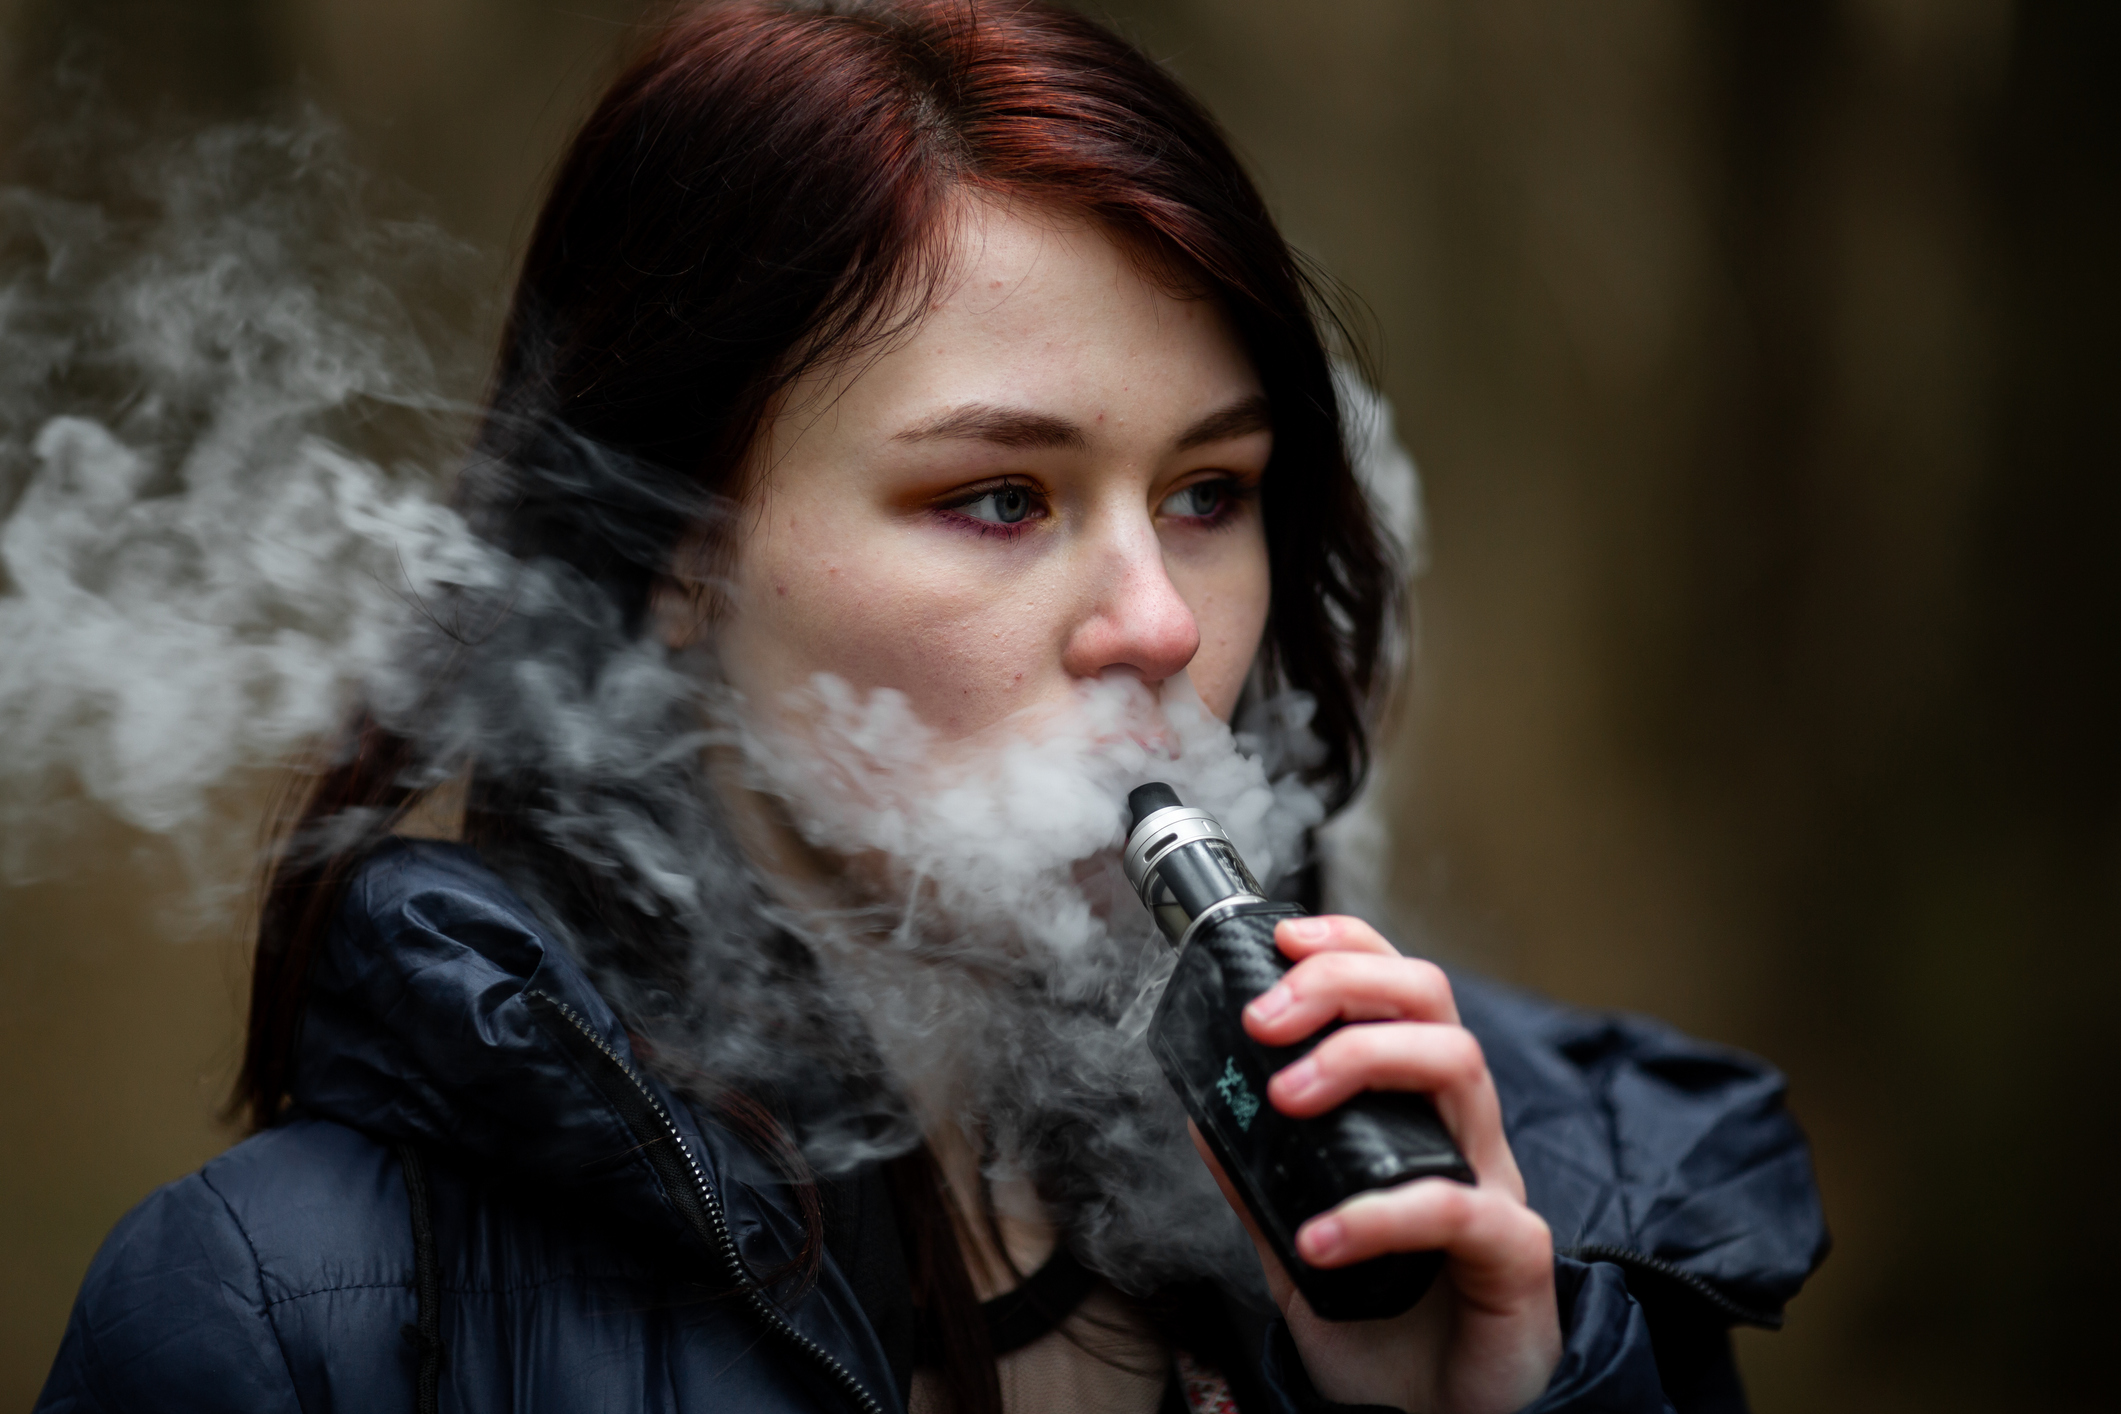 White teenage girl vaping with vapour billowing around her